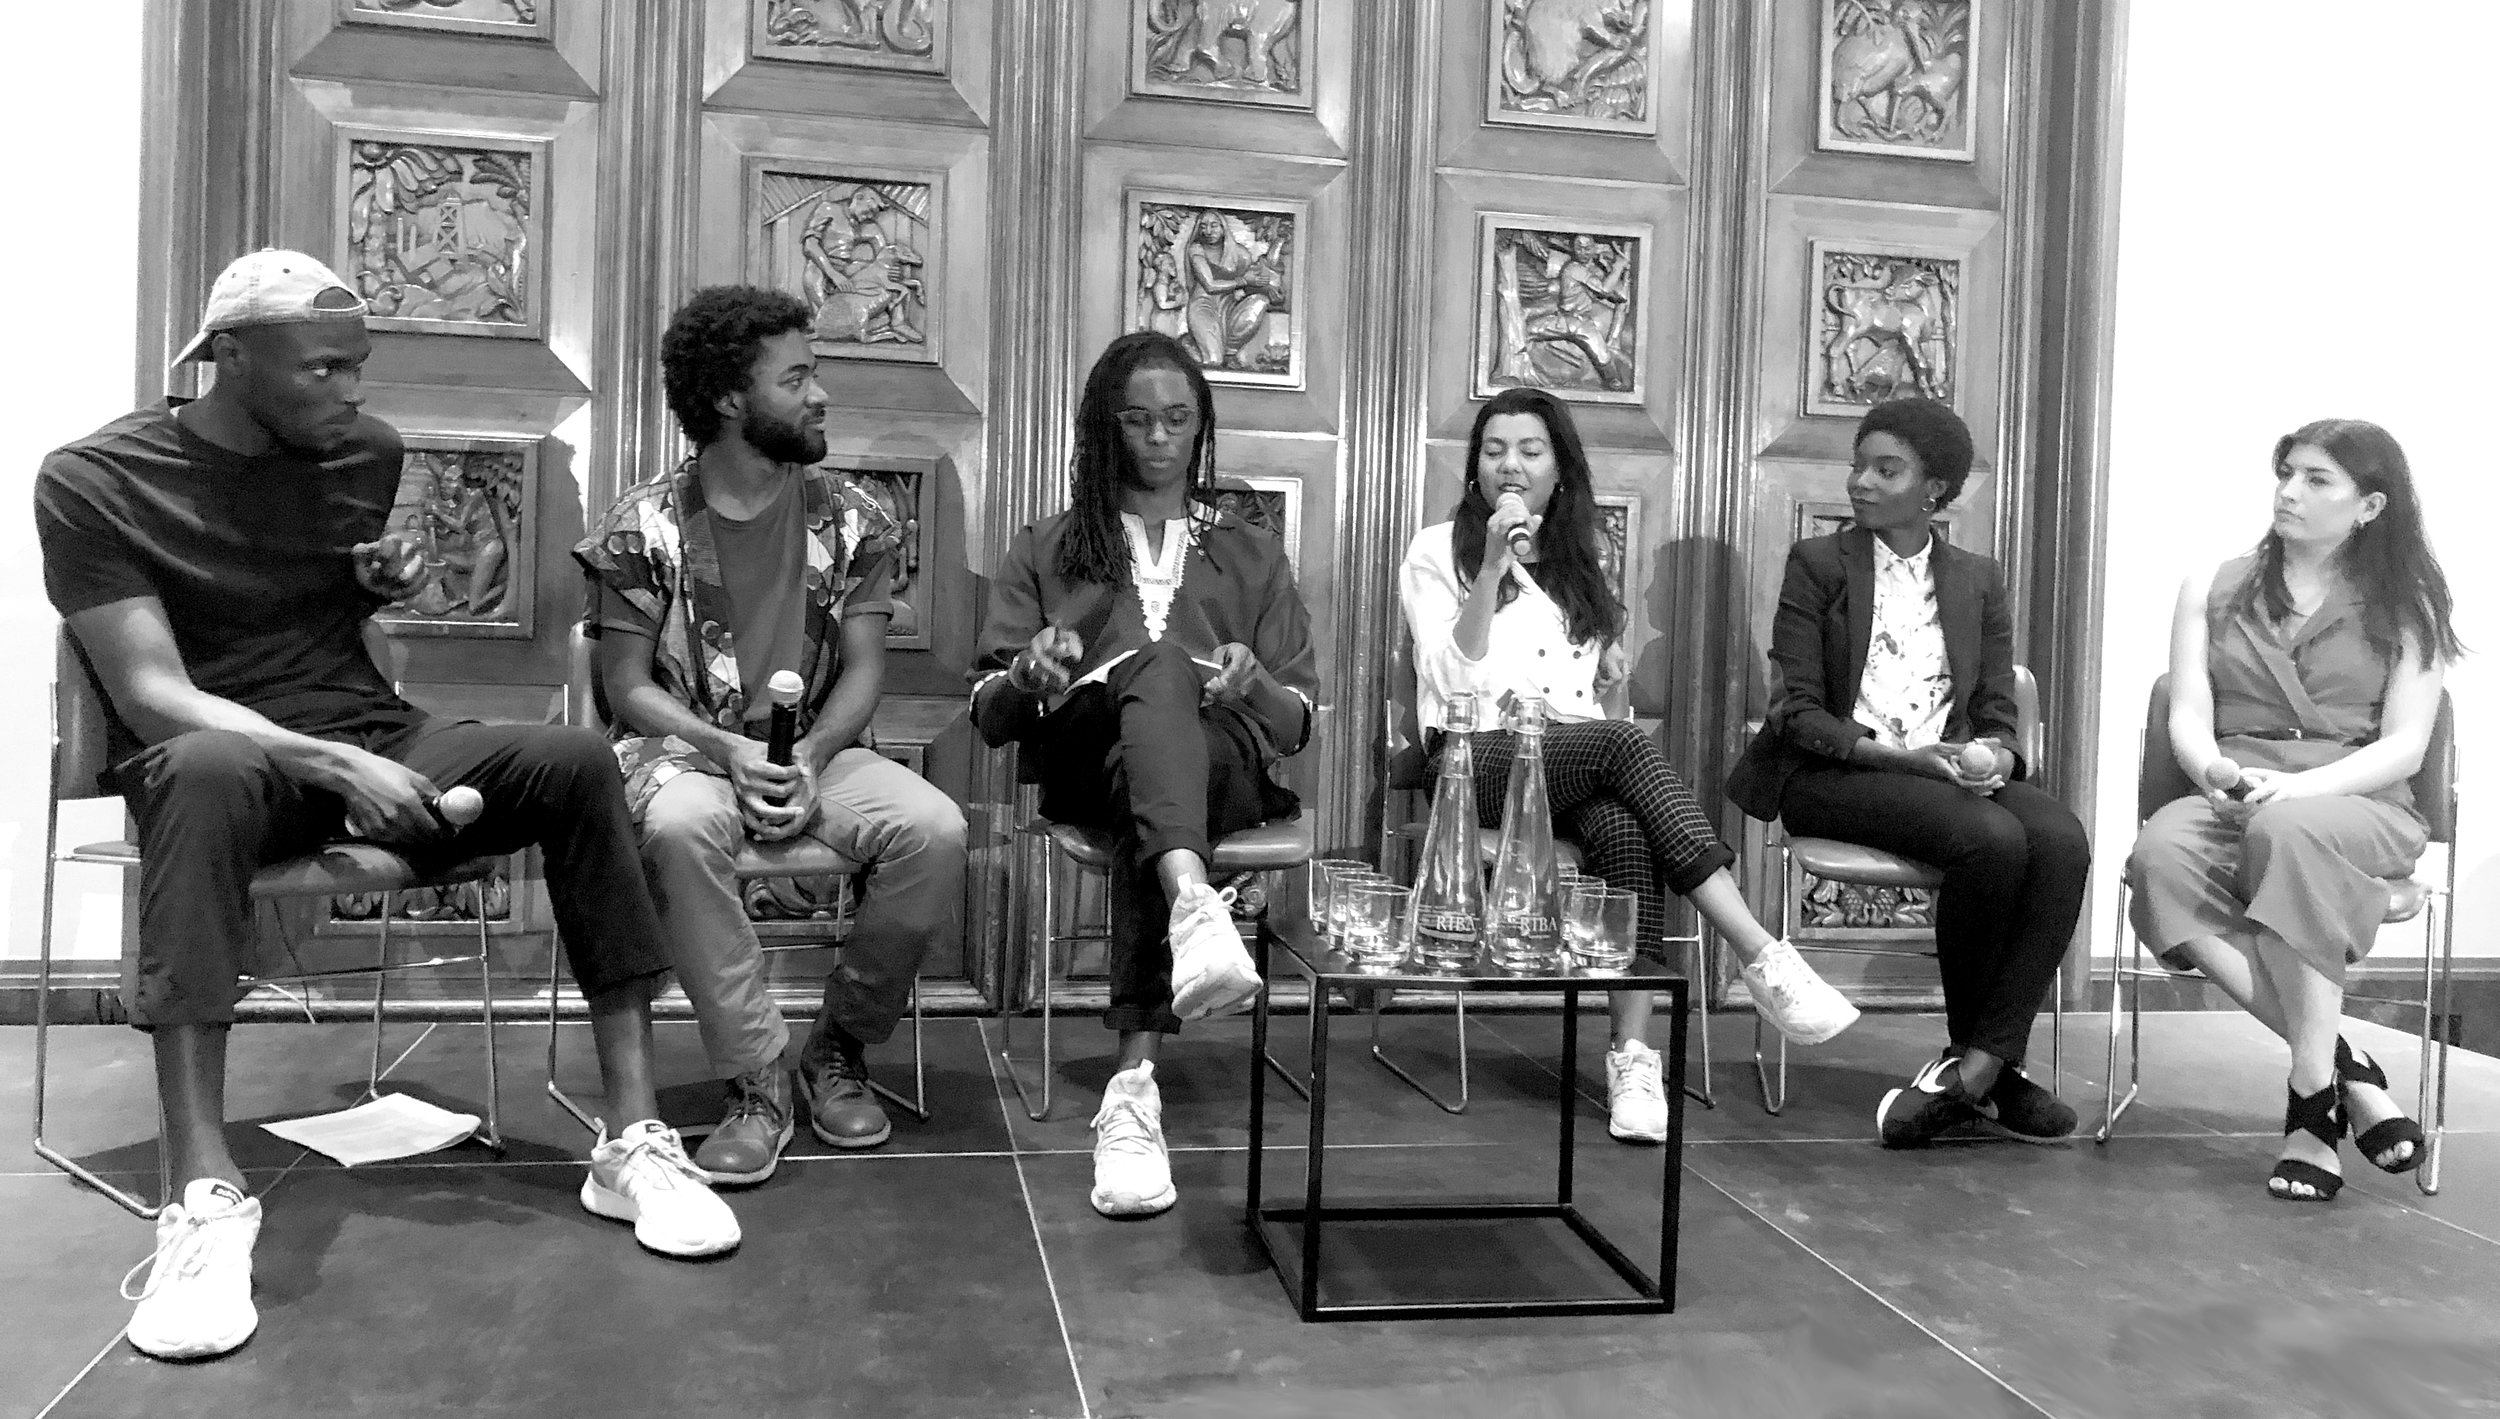 From Left to Right: Gameli Ladzekpo [Resolve Collective], Ahnanse [Steam Down], Akil Scafe-Smith [Resolve Collective], Kieran Yates, Selasi Setufe, and Abigail Patel